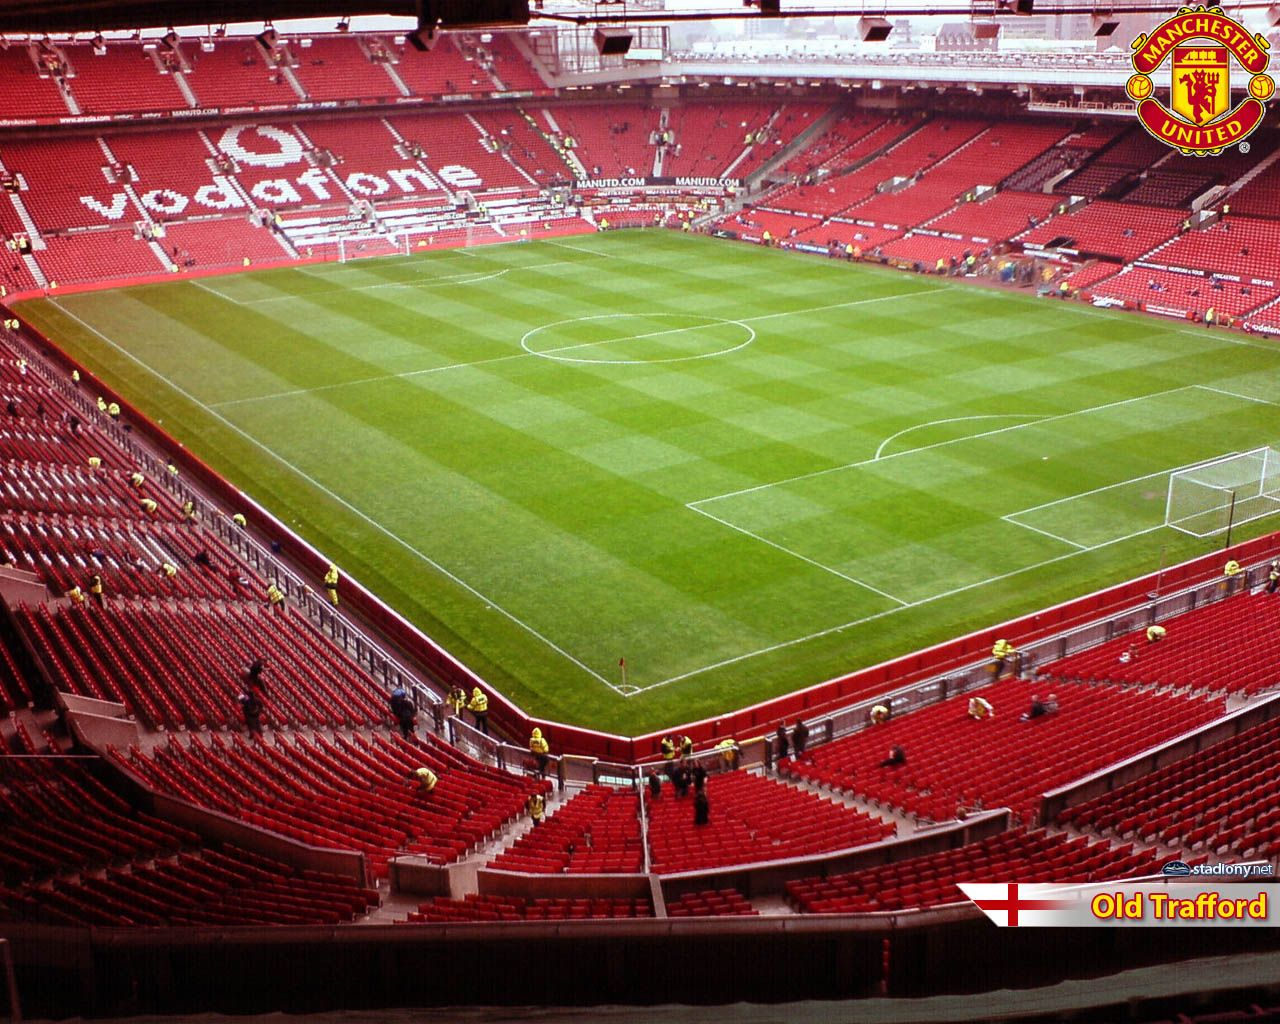 Old Trafford Stadium In 2020 Old Trafford Manchester United Manchester United Images